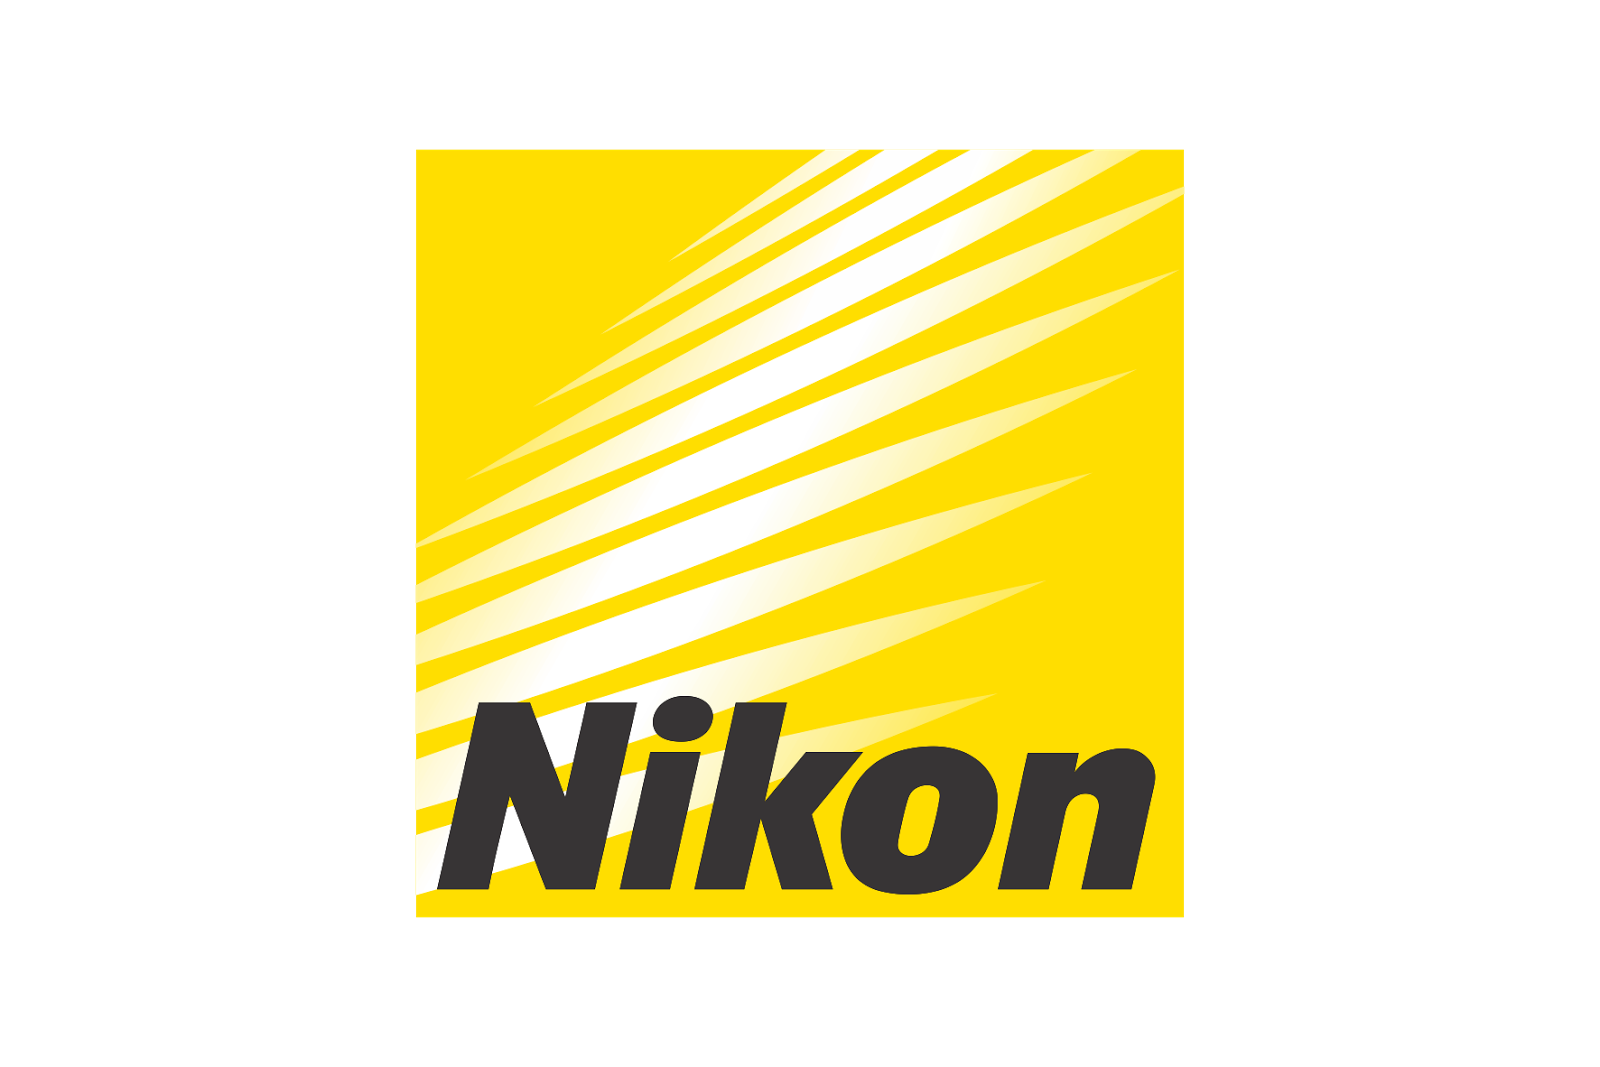 Nikon Logo Wallpaper